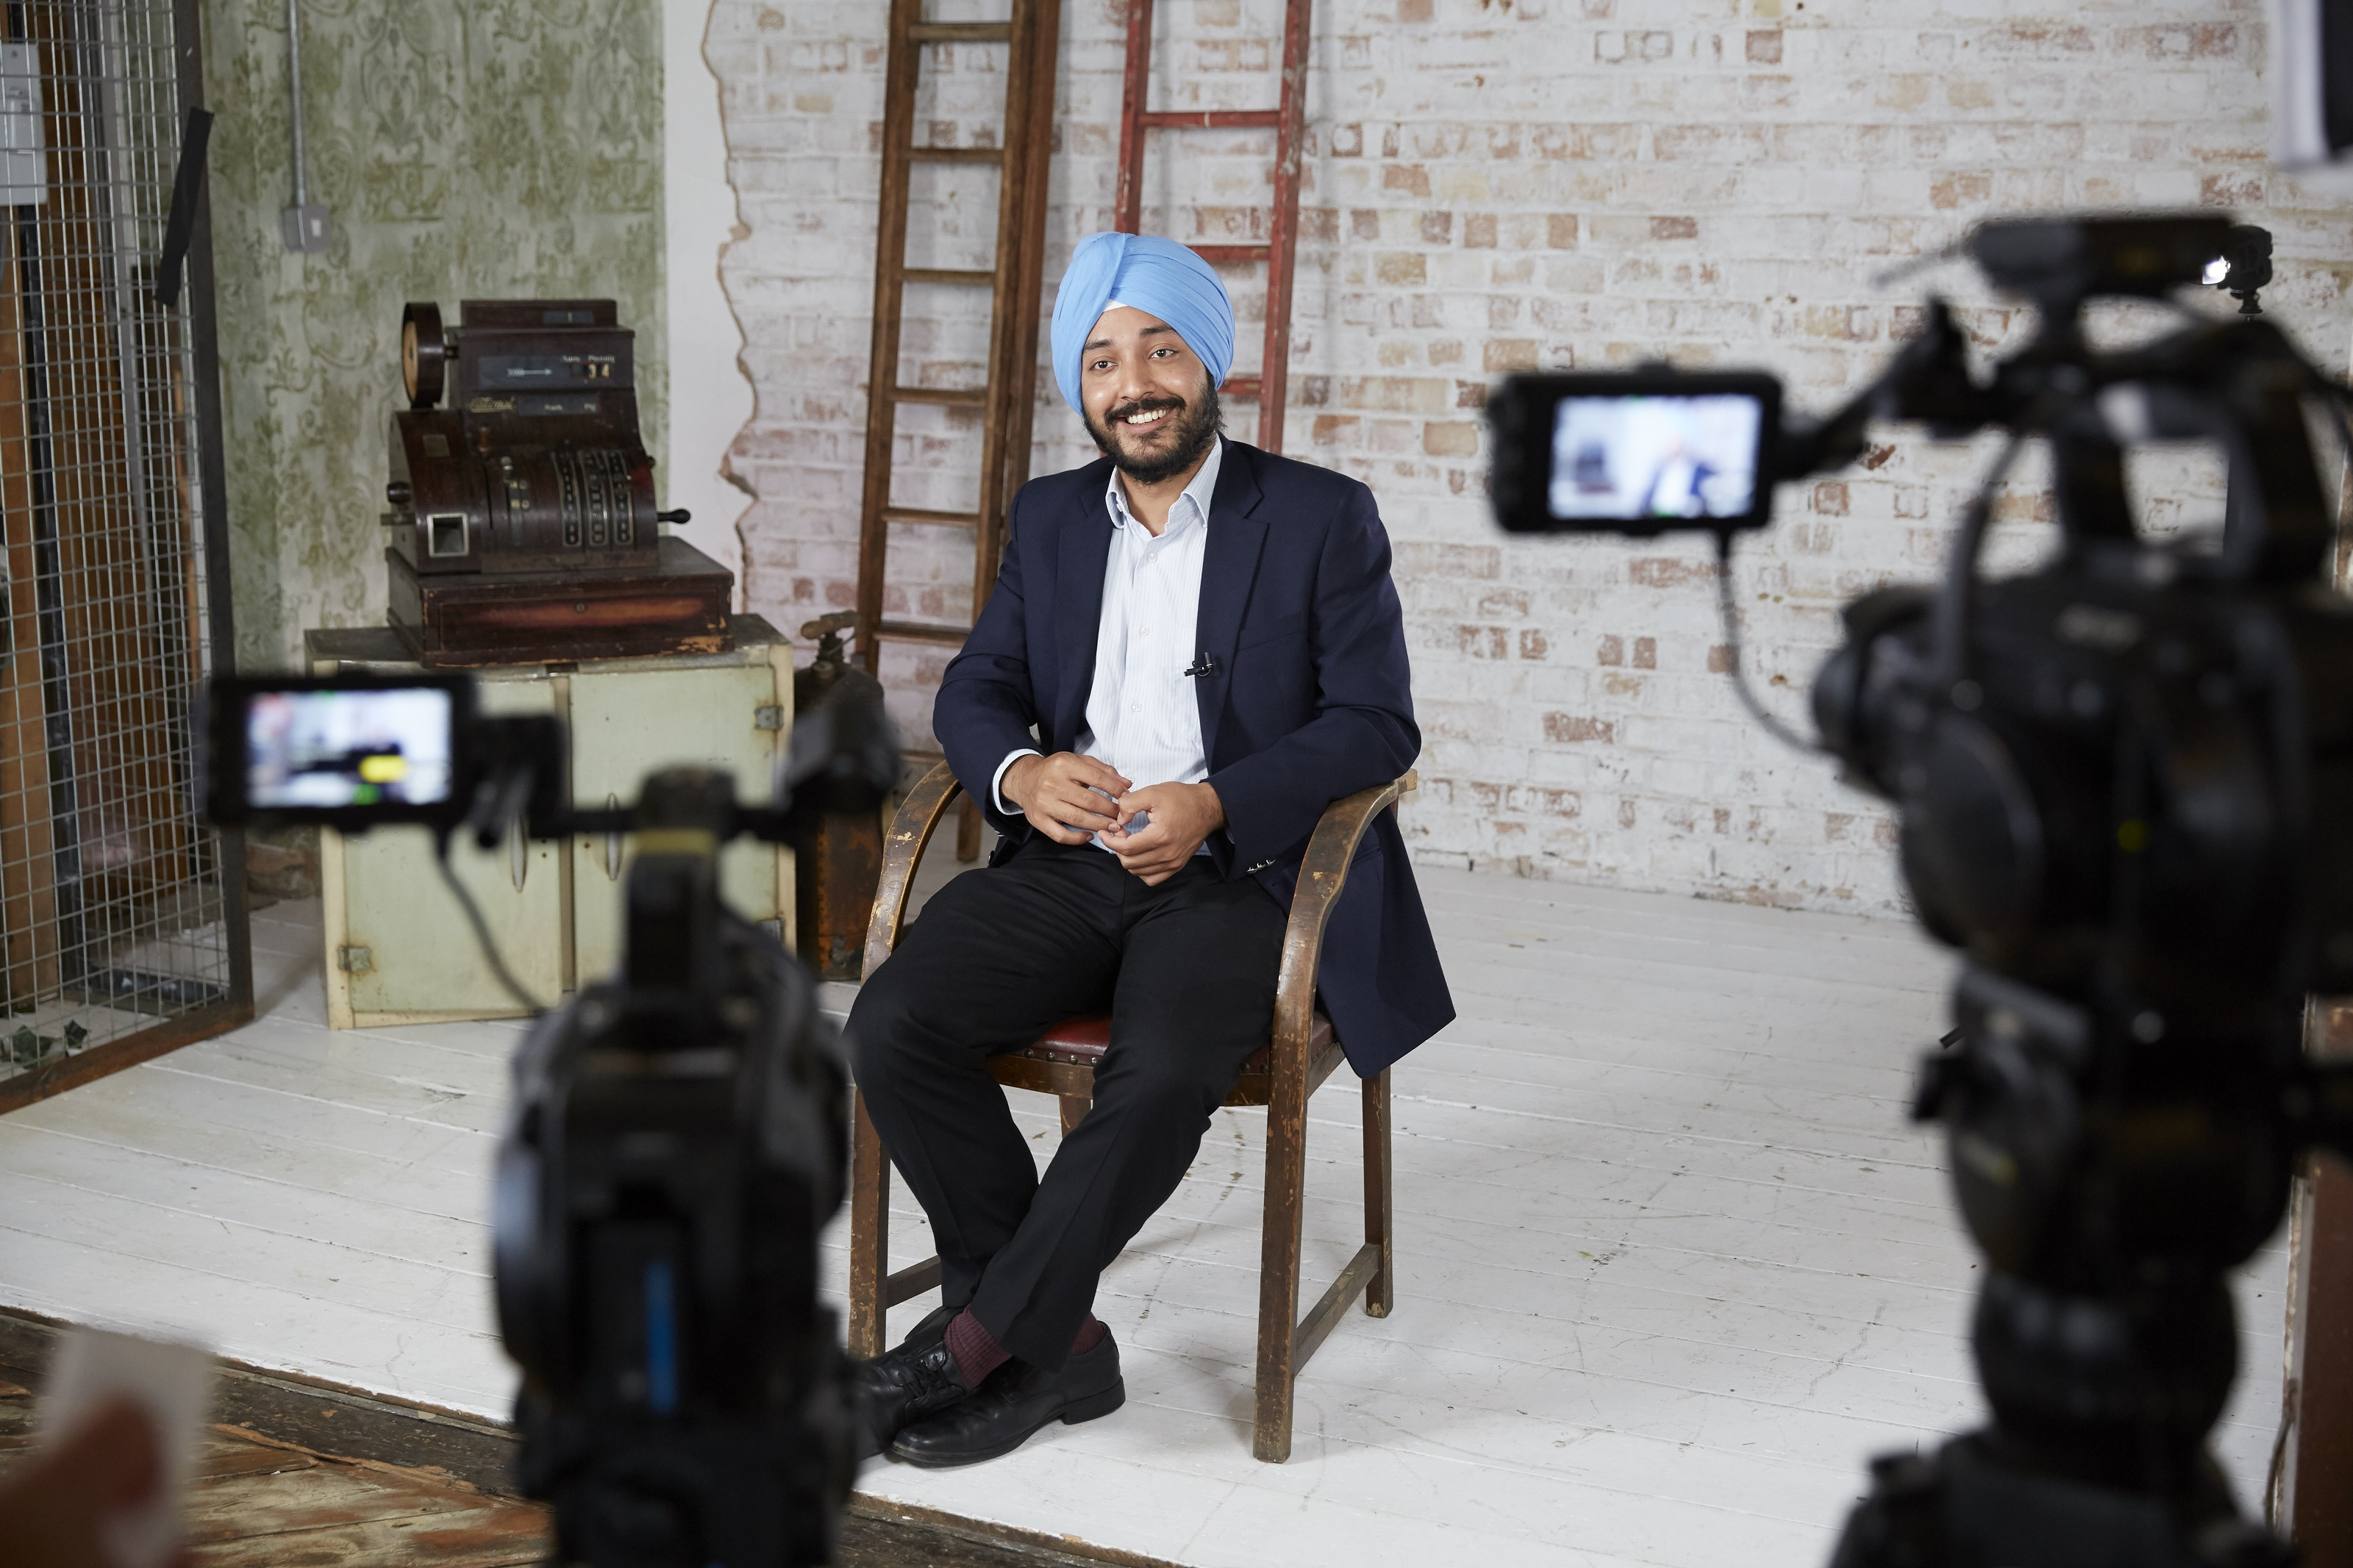 Sikh engineer doing an interview for IET.tv